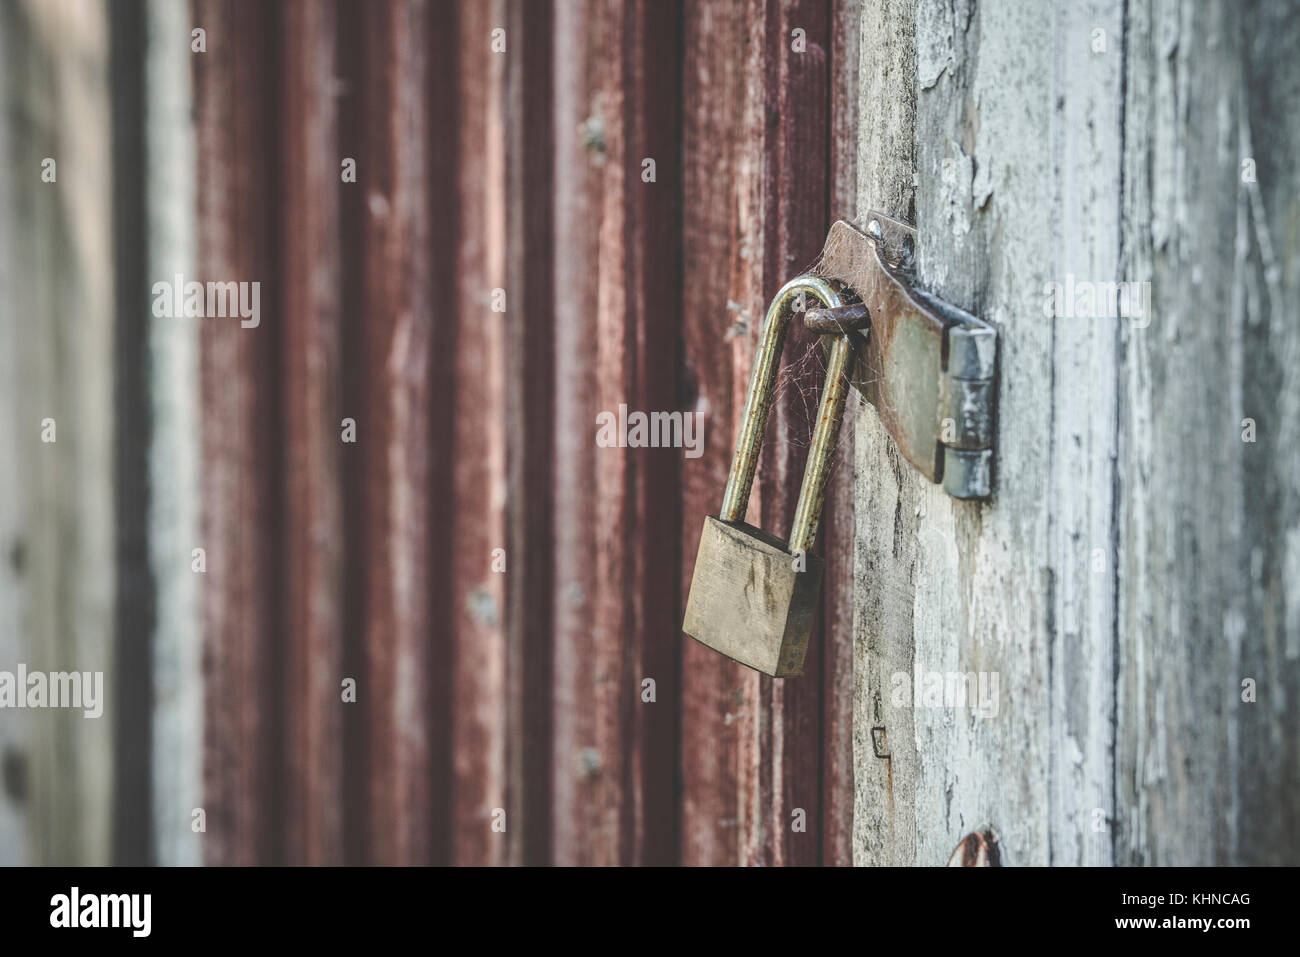 Old lock on a wooden door in golden color in a weathered grunge look - Stock Image